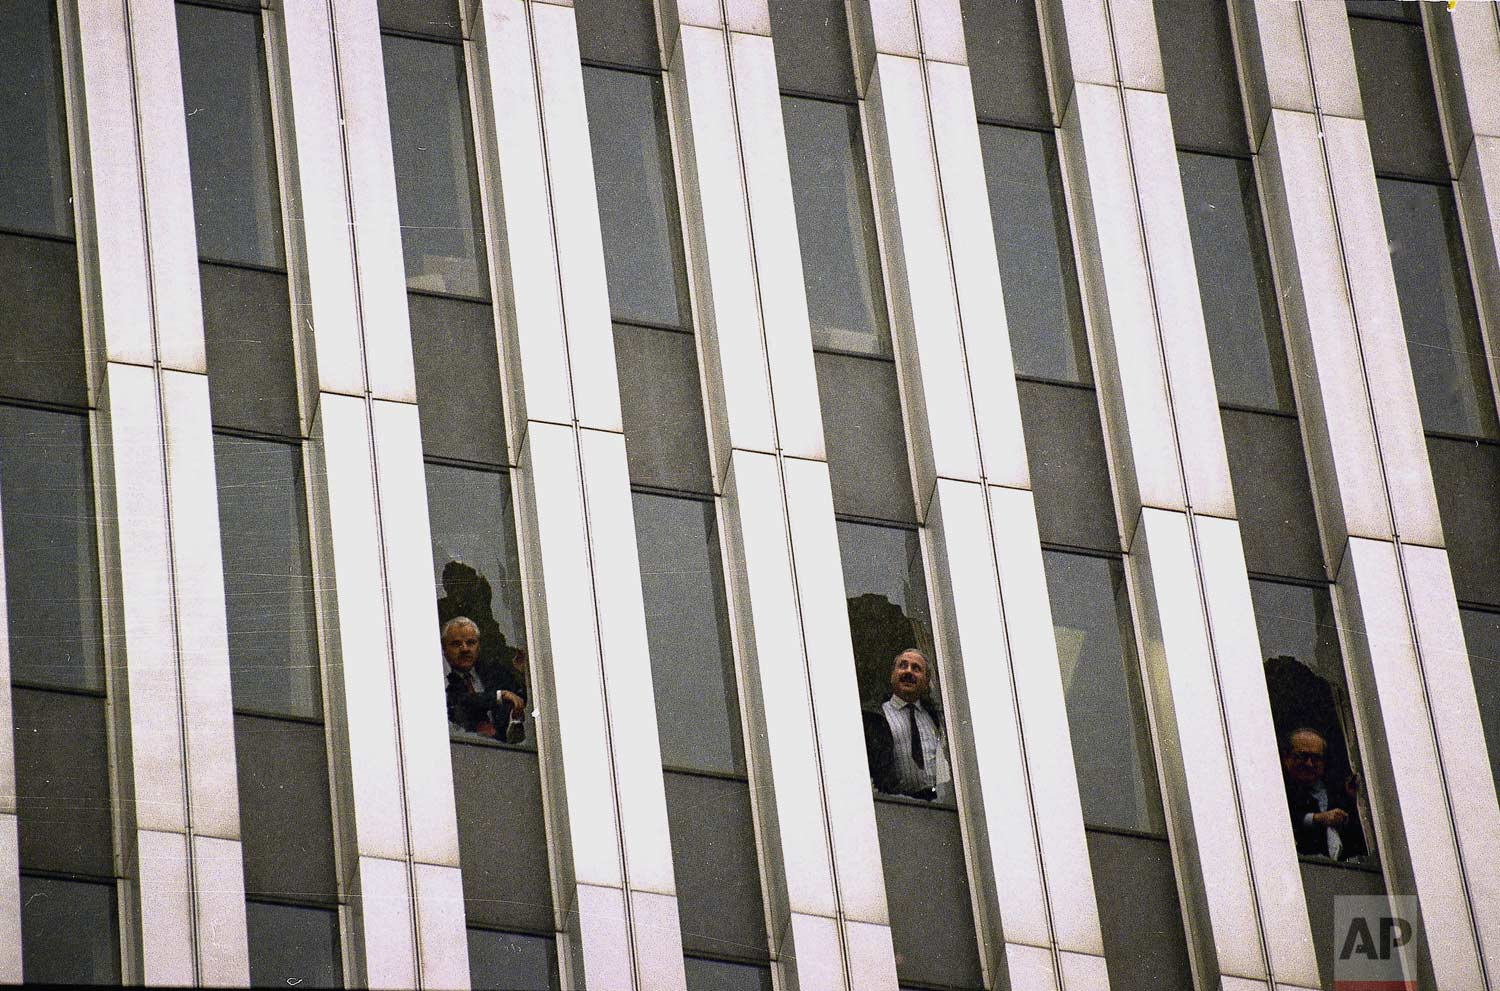 Workers peer through broken windows of the World Trade Center in New York, Feb. 26, 1993, after an explosion in an underground garage rocked the twin towers complex. (AP Photo/Alex Brandon)